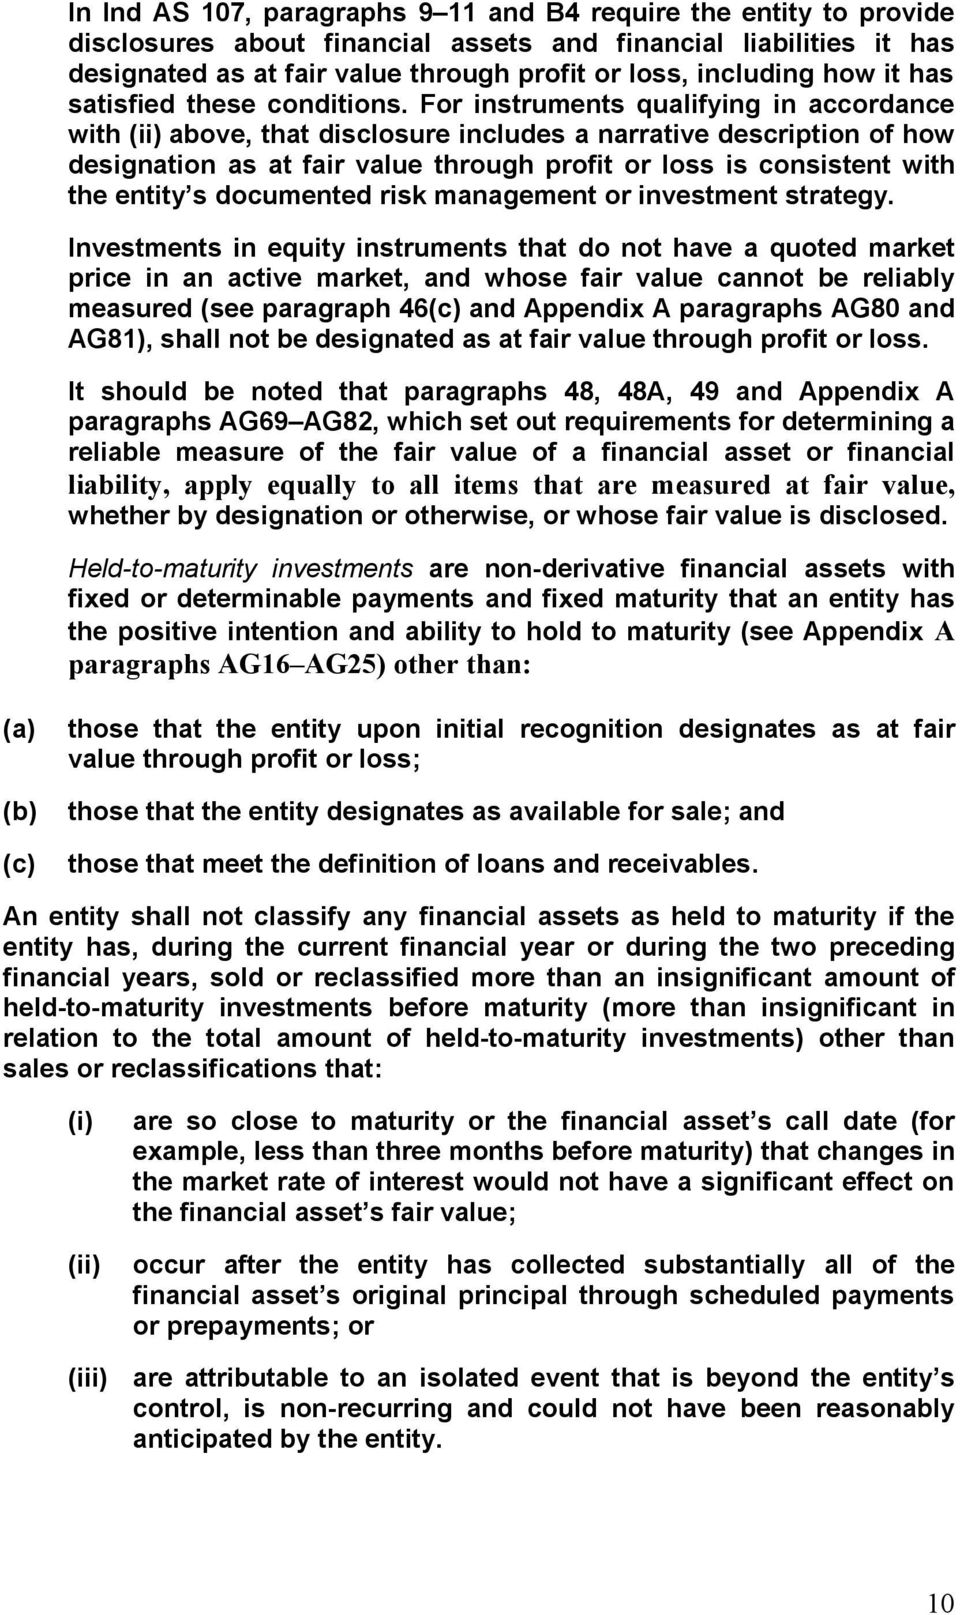 For instruments qualifying in accordance with (ii) above, that disclosure includes a narrative description of how designation as at fair value through profit or loss is consistent with the entity s